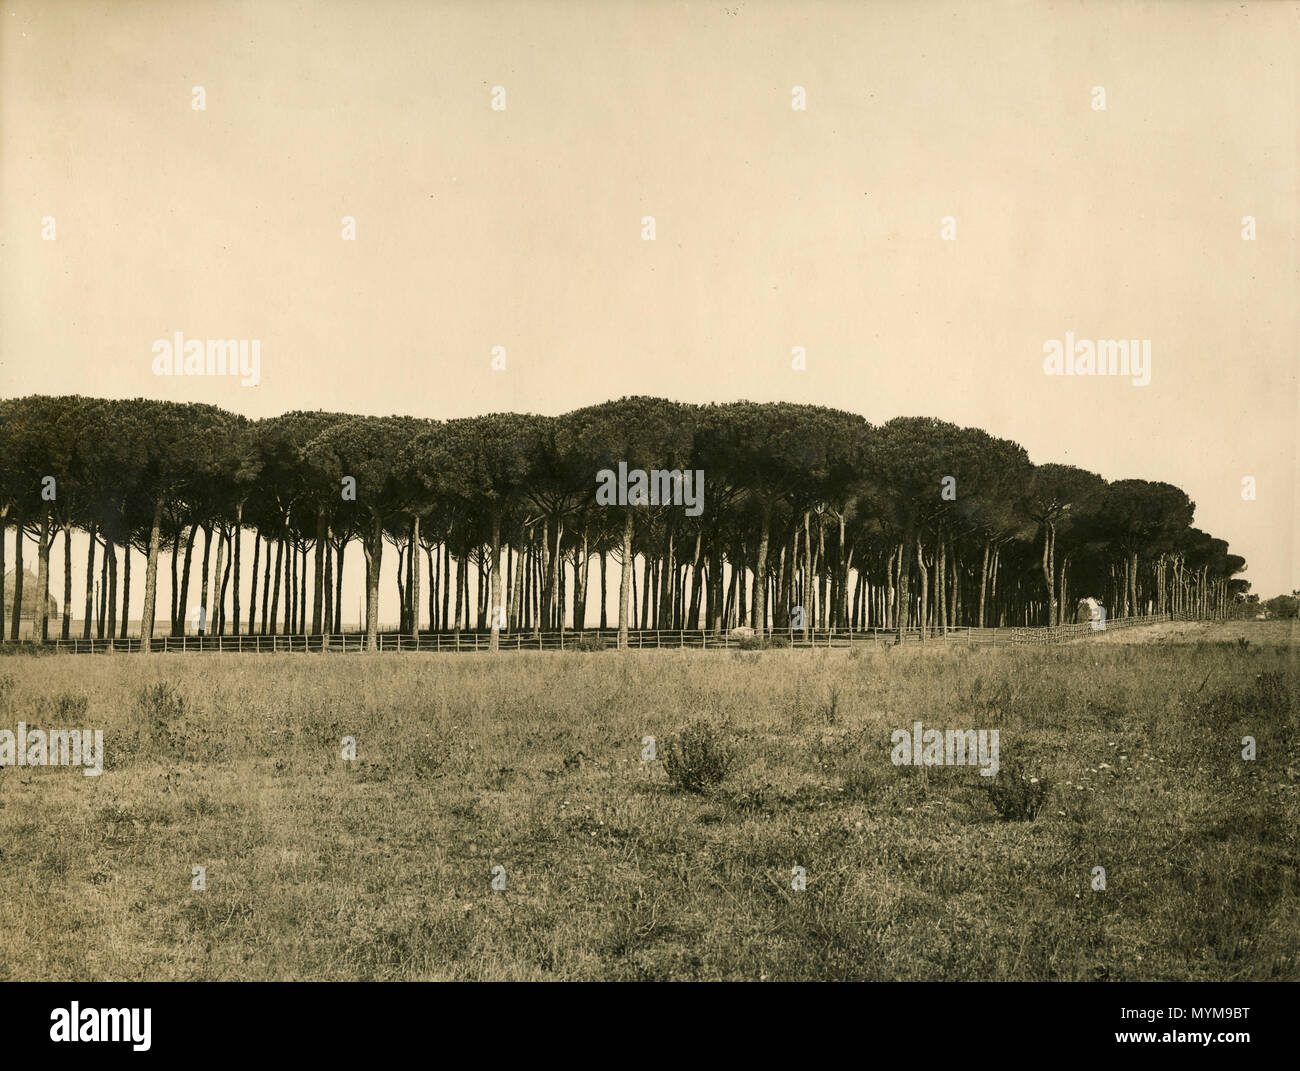 Pine tree forest, Italy 1930s - Stock Image